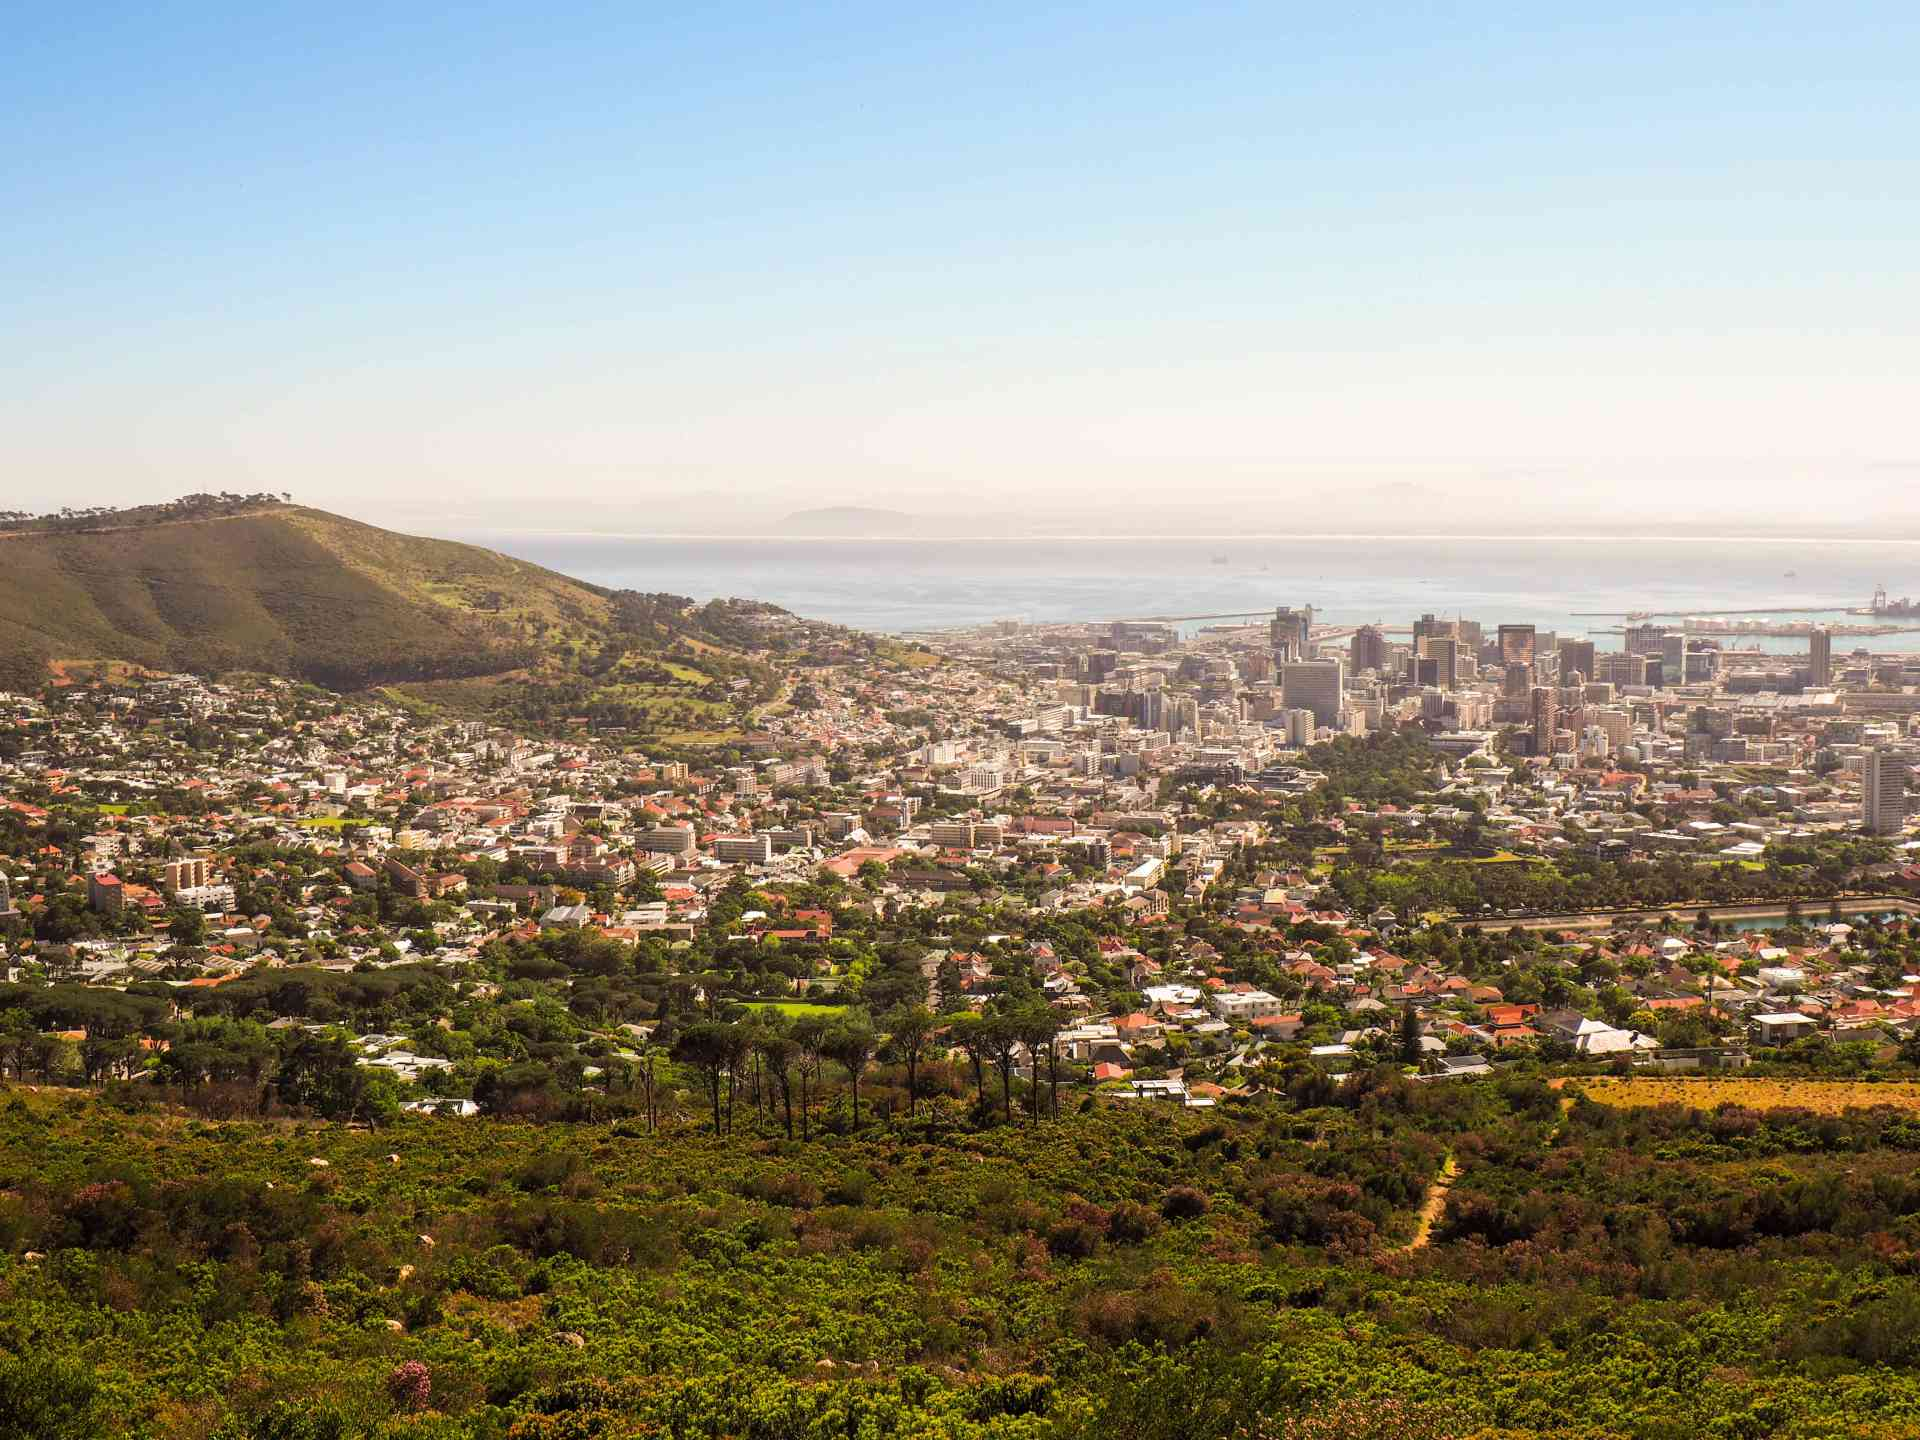 The picturesque western cape